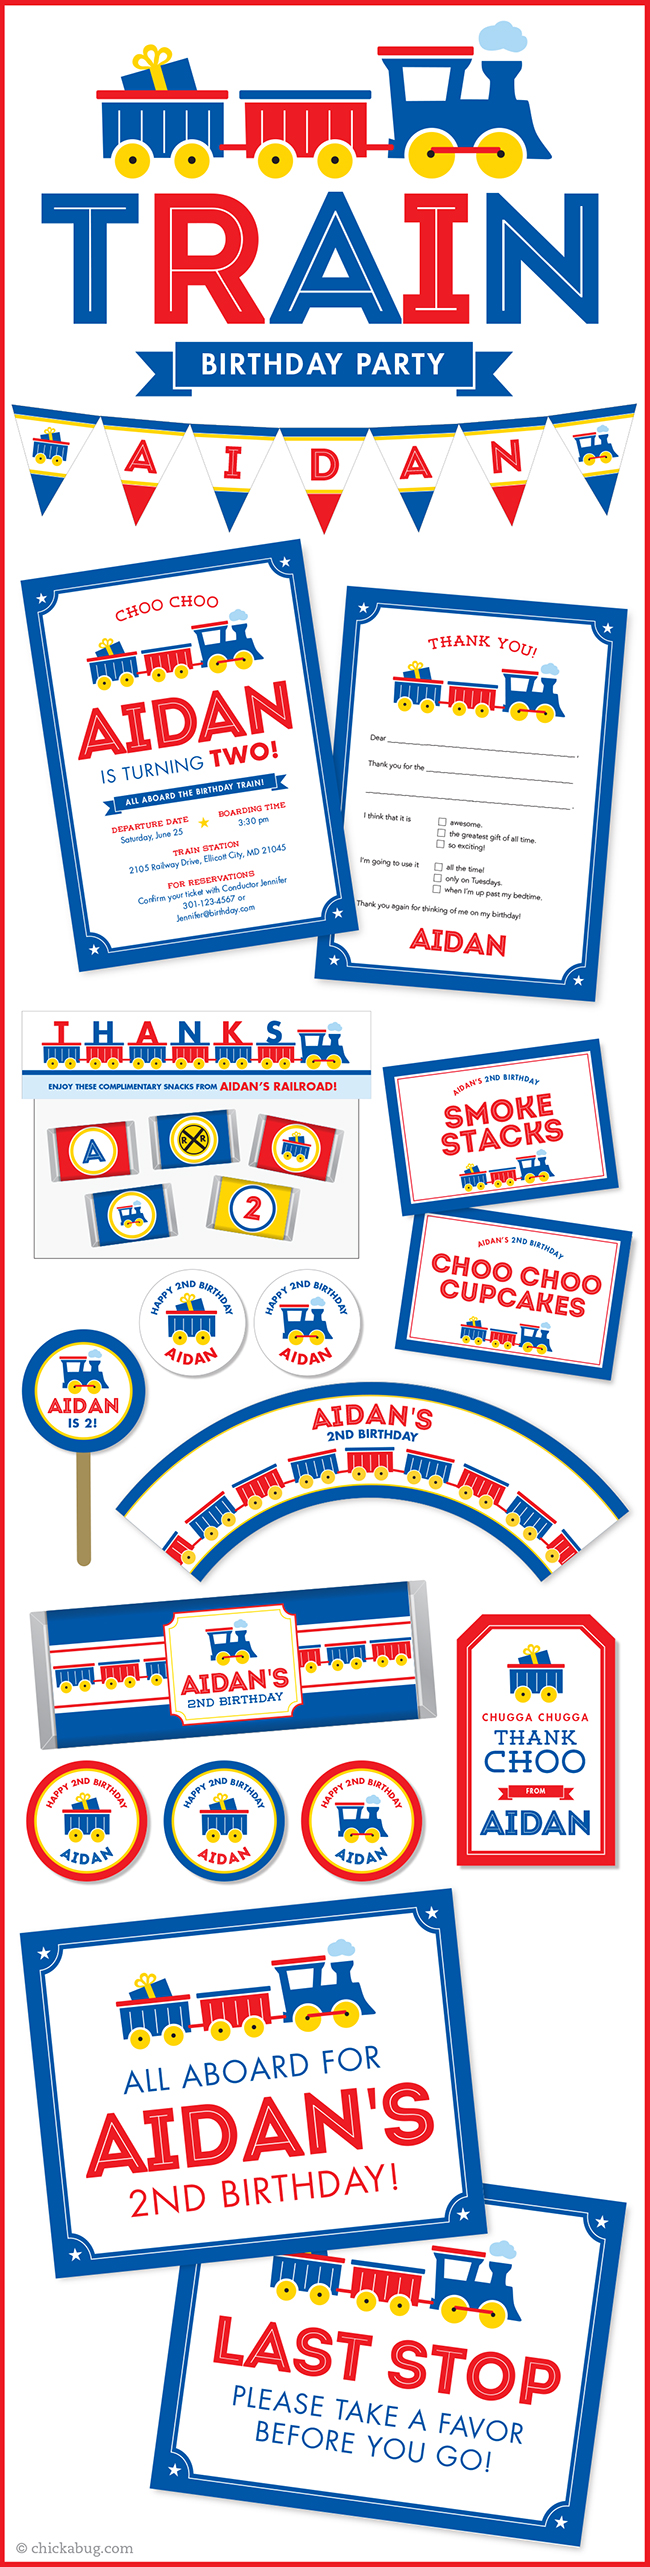 Train Theme Birthday Party Paper Goods Printables From Chickabug